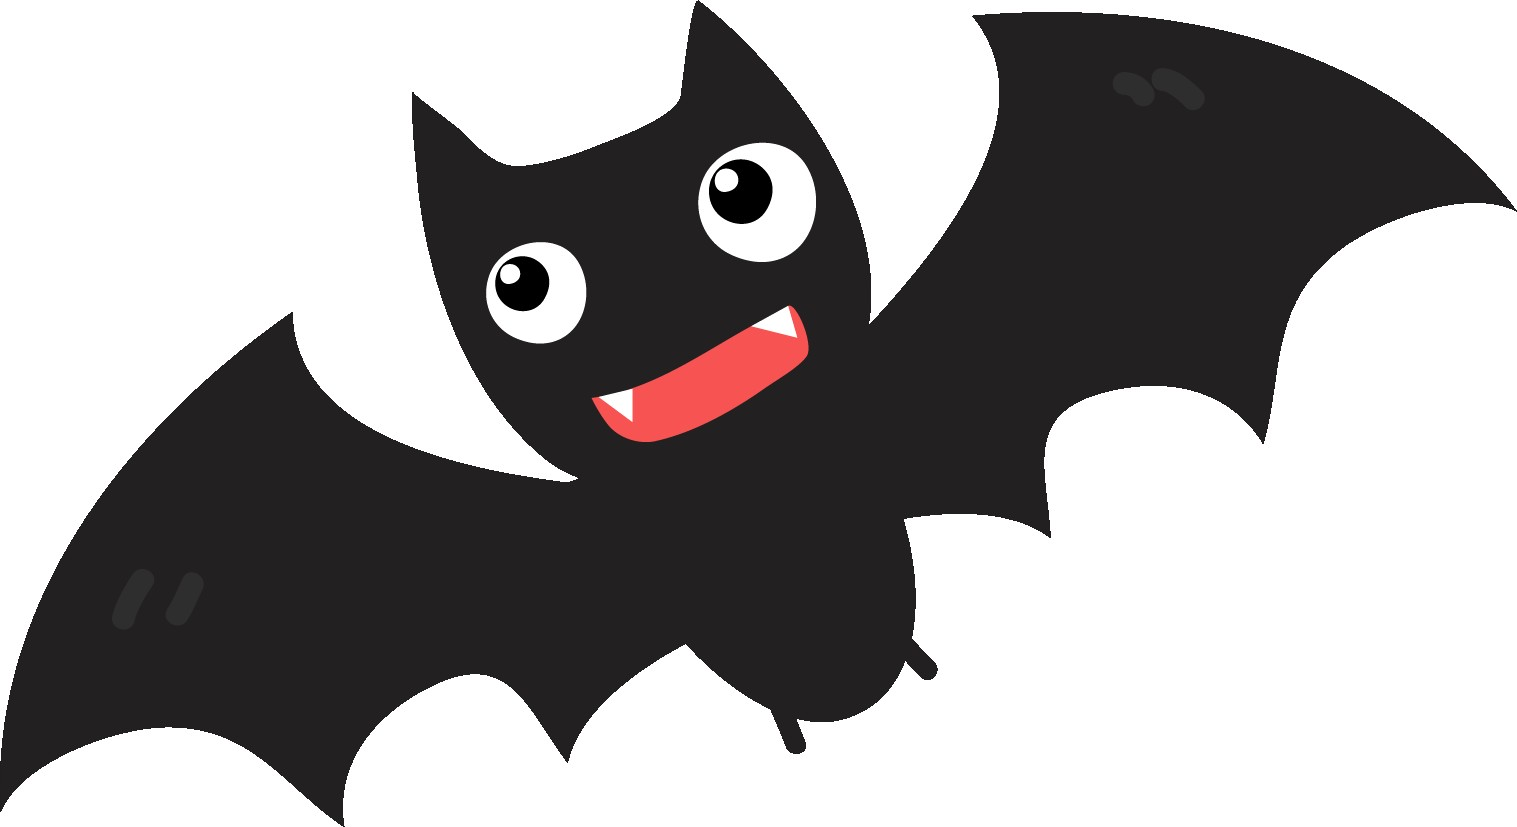 Download Free png Bat Png Transparent Free Images Only Clipart.